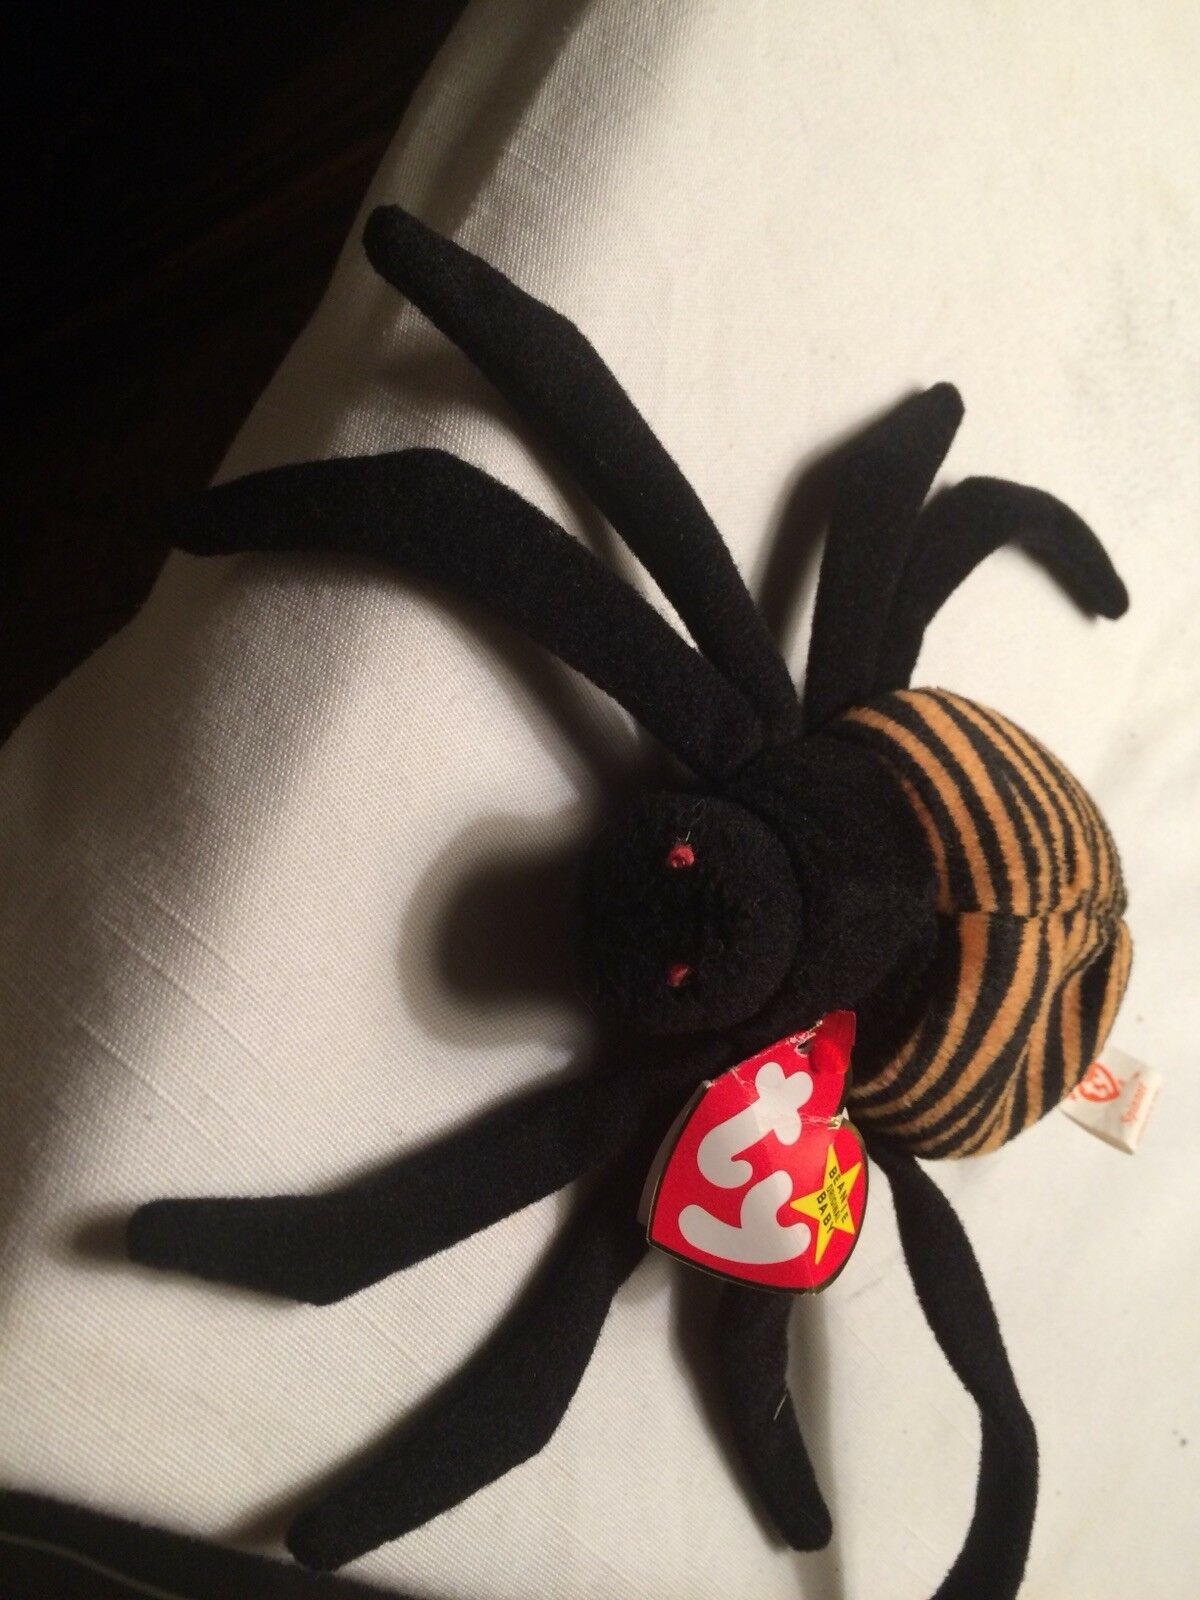 SPINNER THE SPIDER BEANIE BABY BABY BEANIE - NEW WITH TAG a09eee